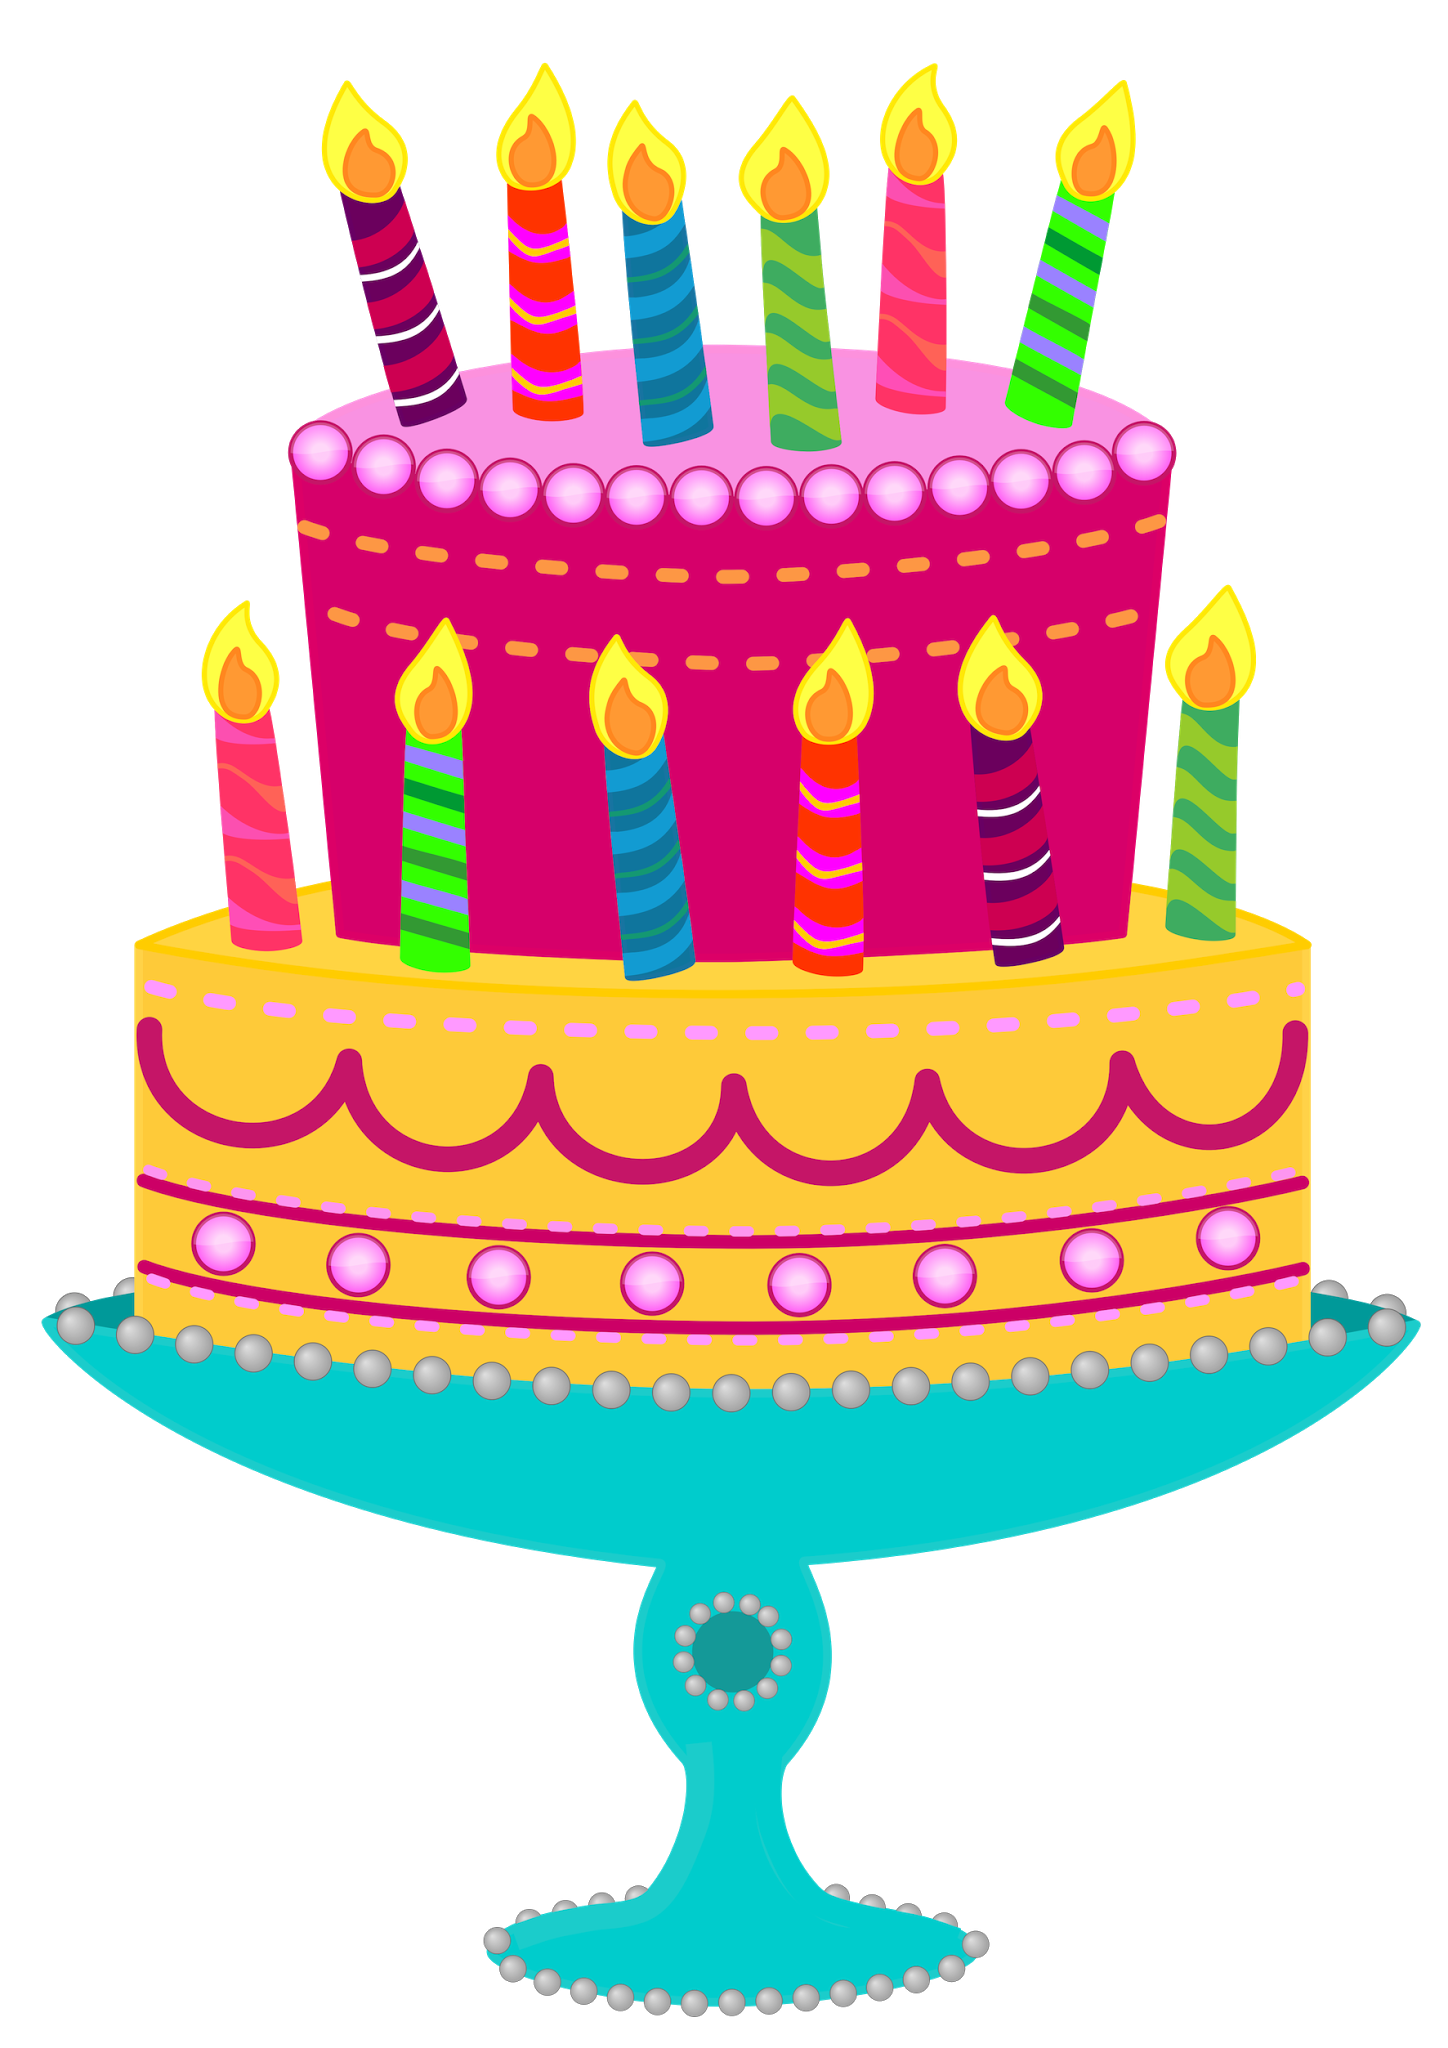 Free images cliparts co. Clipart birthday cake slice